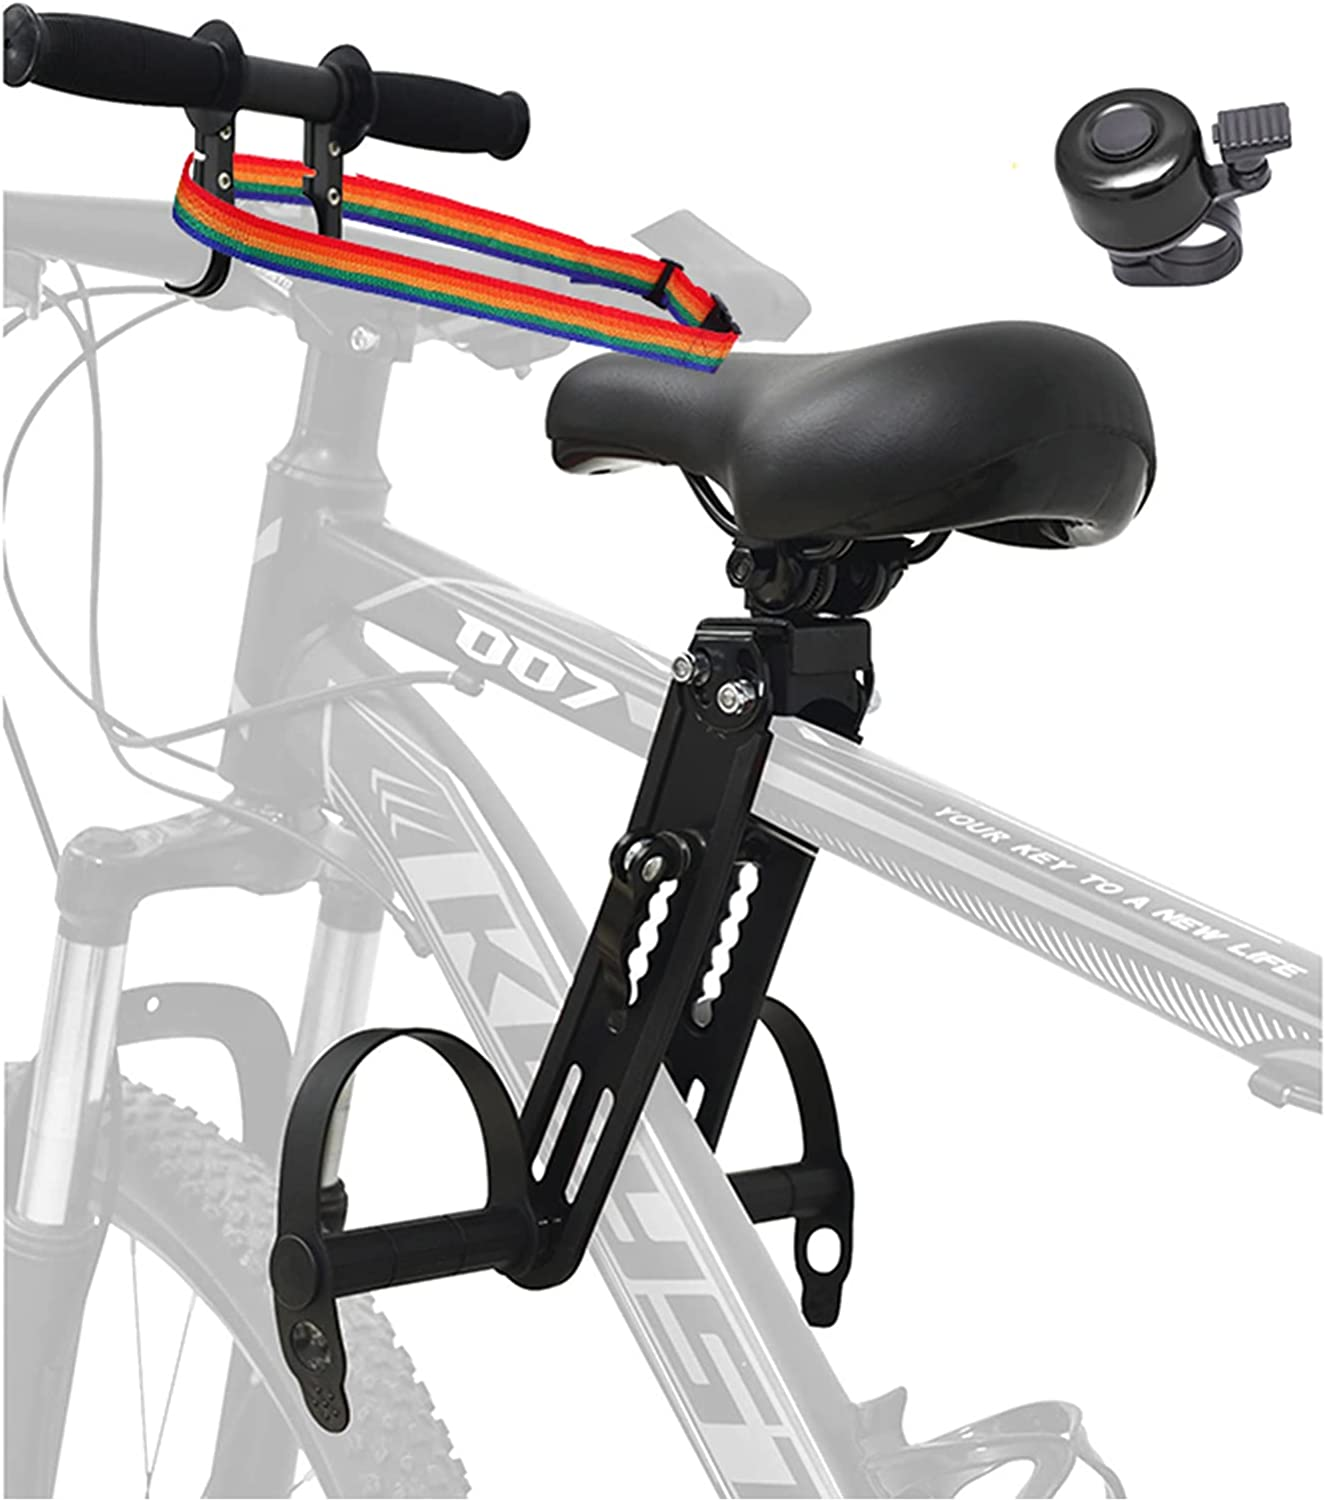 Veggicy Kids Bike Seat with Handlebar Attachment, Detachable Front Mounted Child Bicycle Seats with Foot Pedals for Children 2~5 Years(up to 48 Pound), Compatible with All Adult Mountain Bikes.